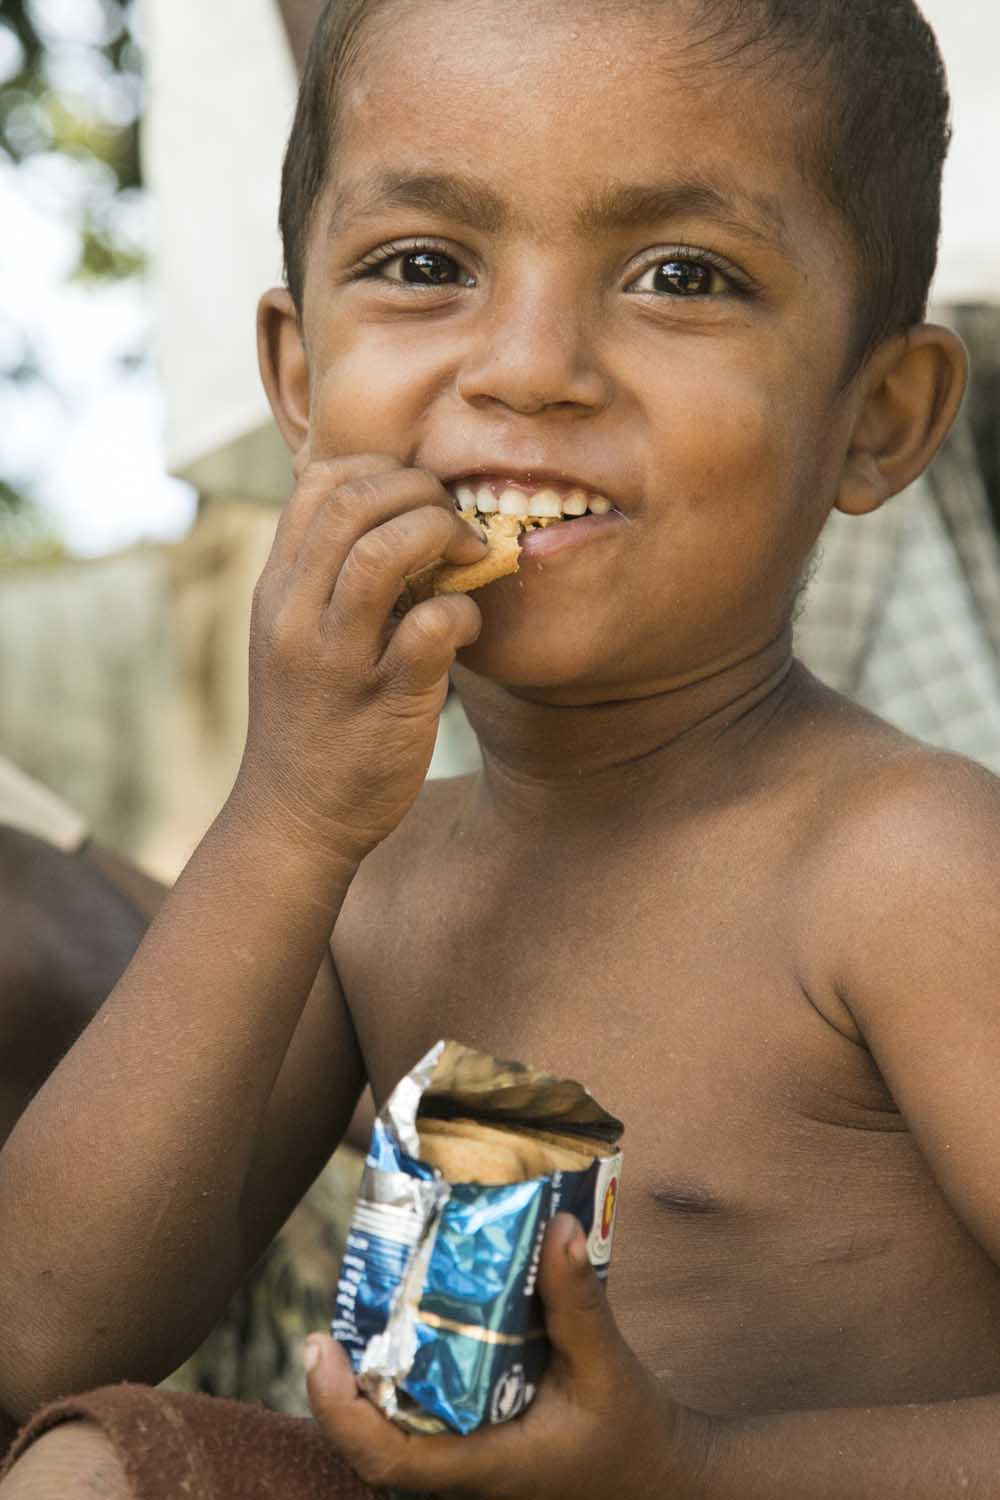 Photo: WFP / Saikat Mojumde